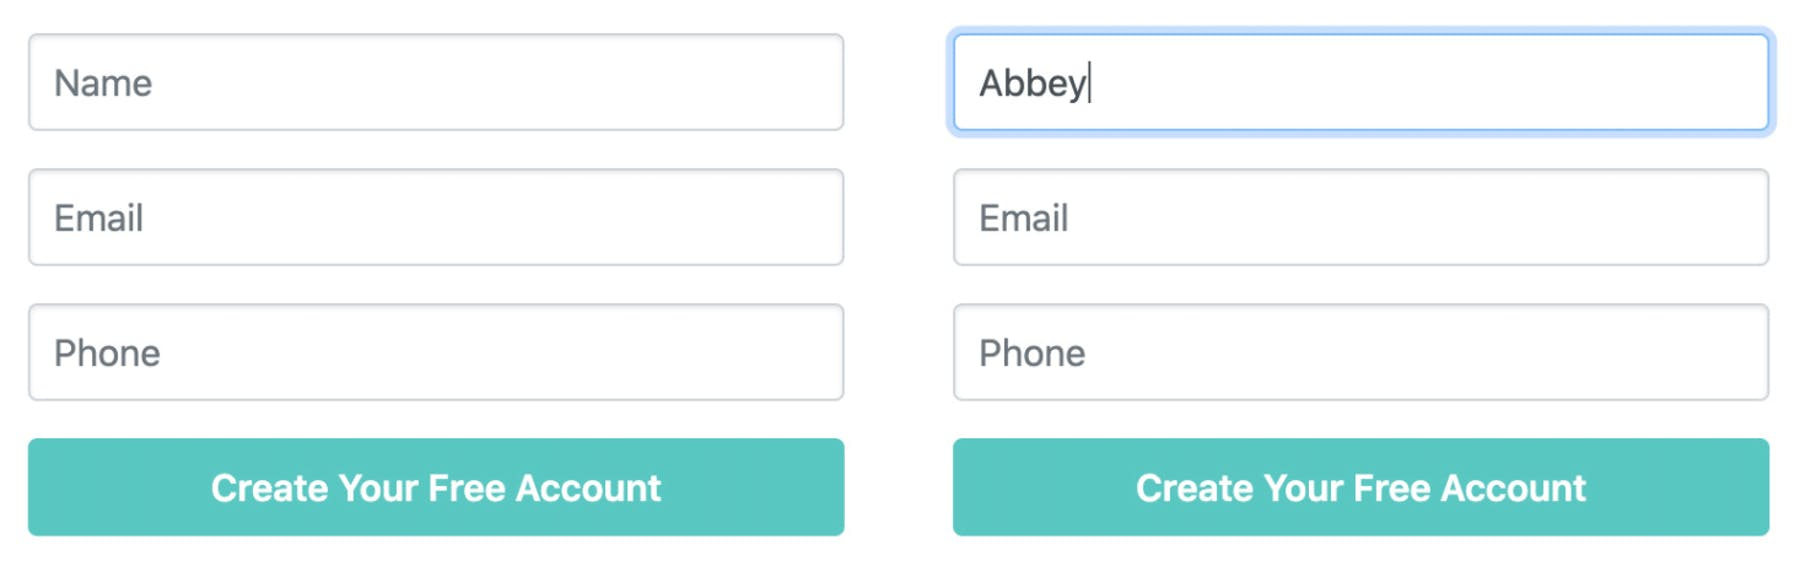 form field labels